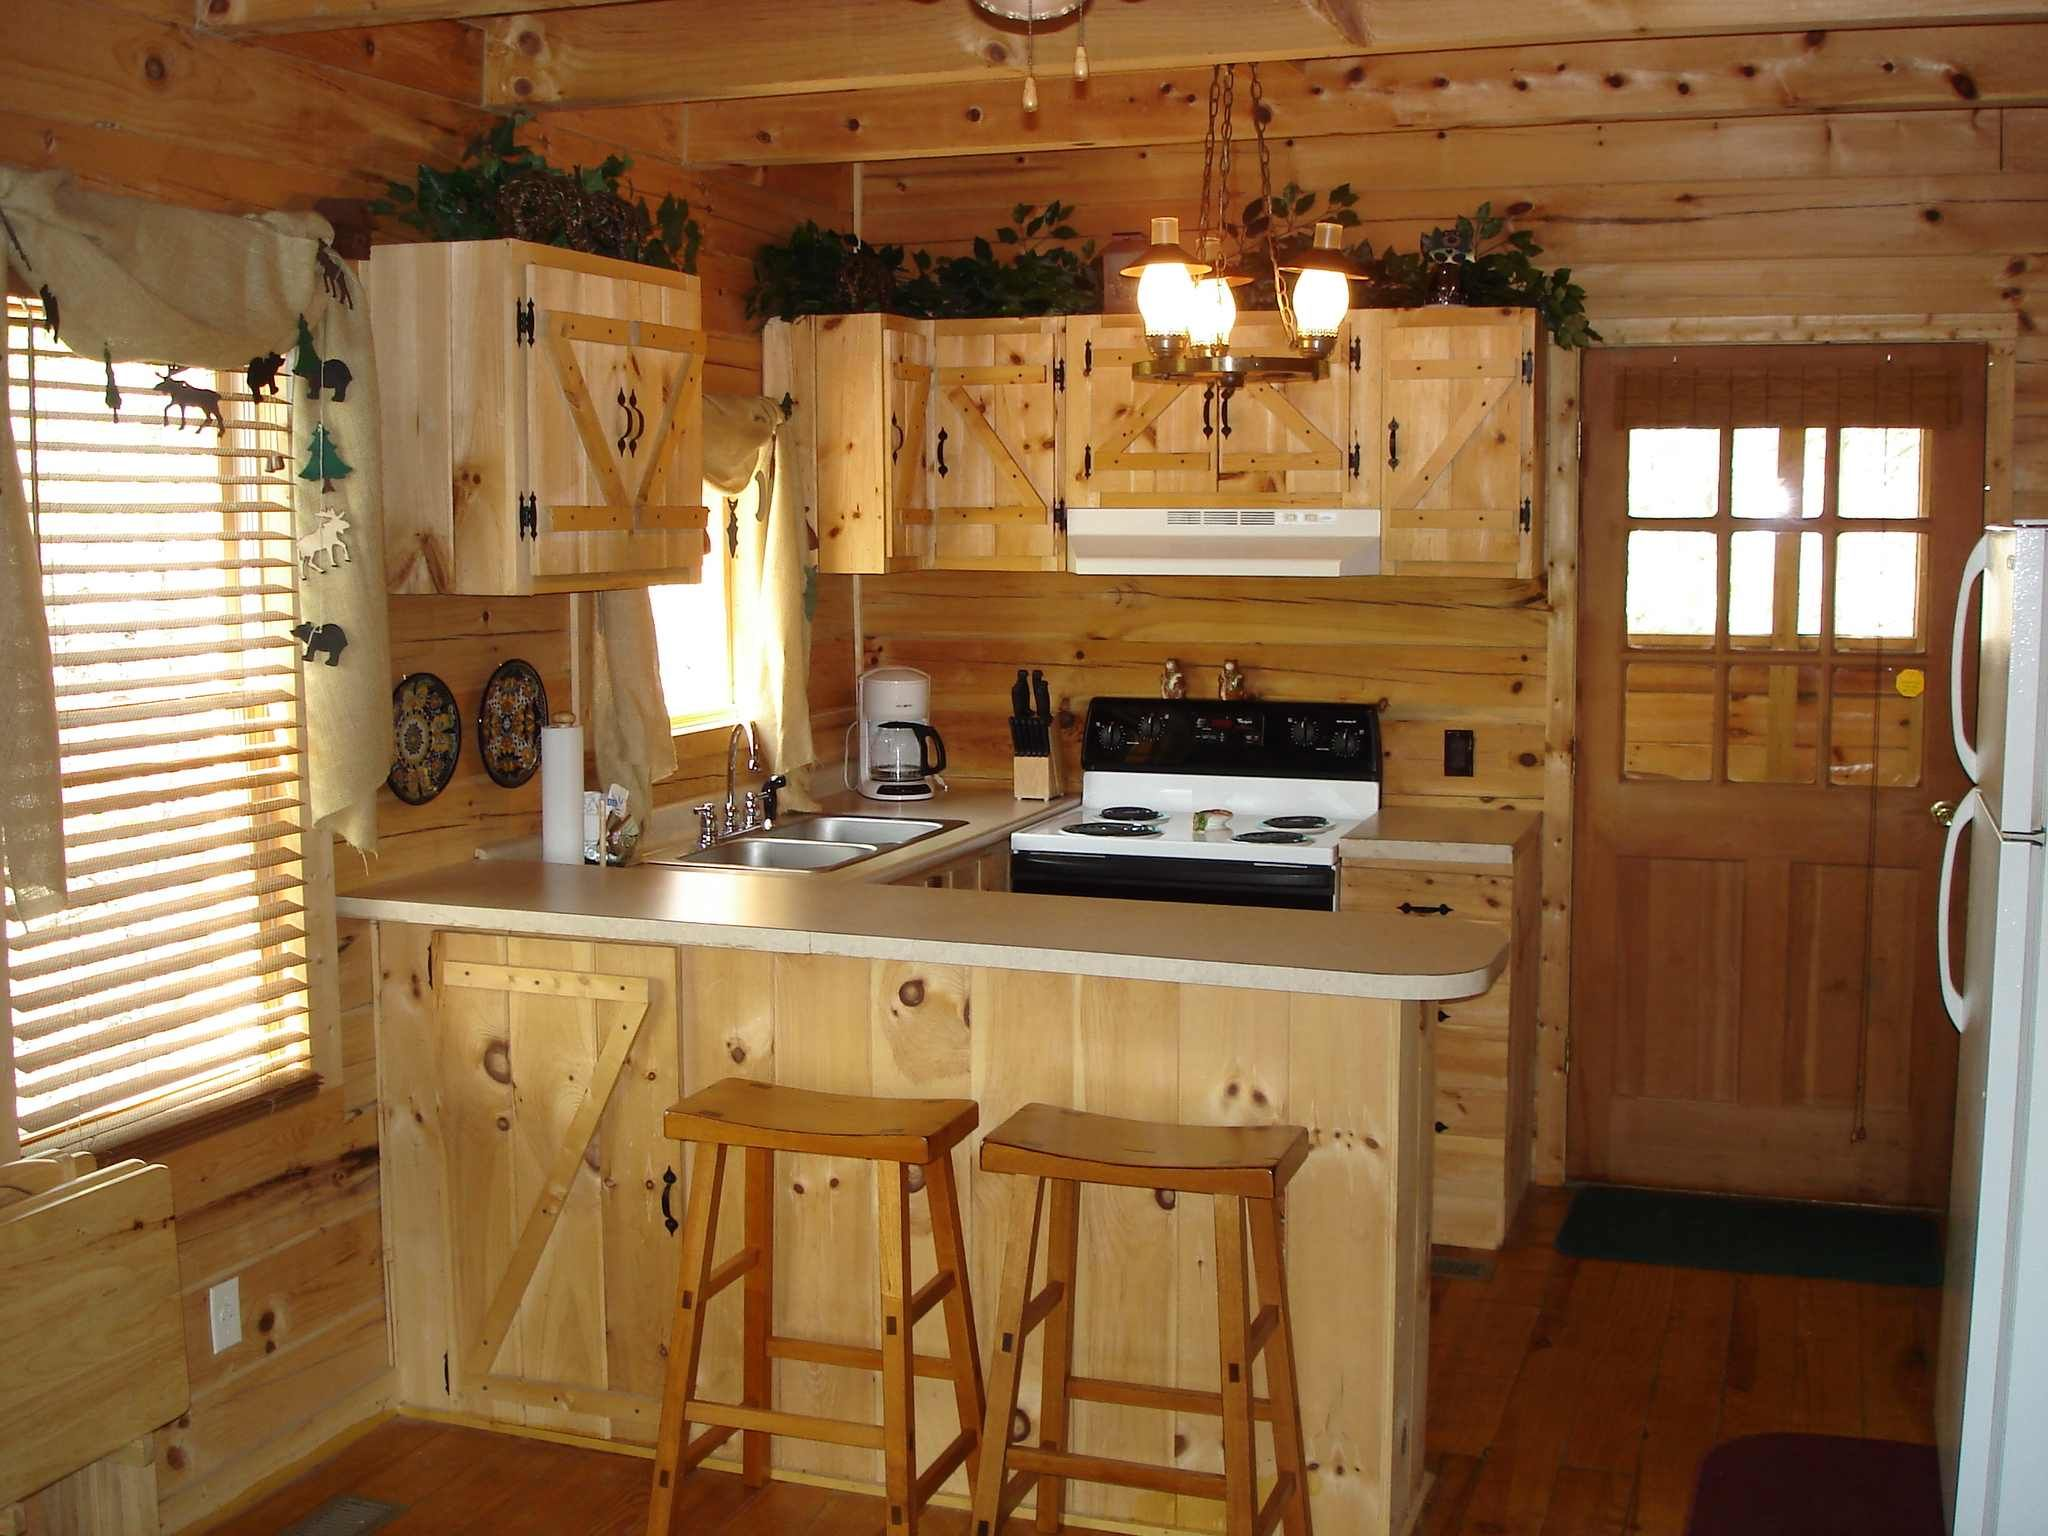 Rustic Kitchen Cabinets Material With Solid Wood Vectronstudios - Kitchen designs for small homes